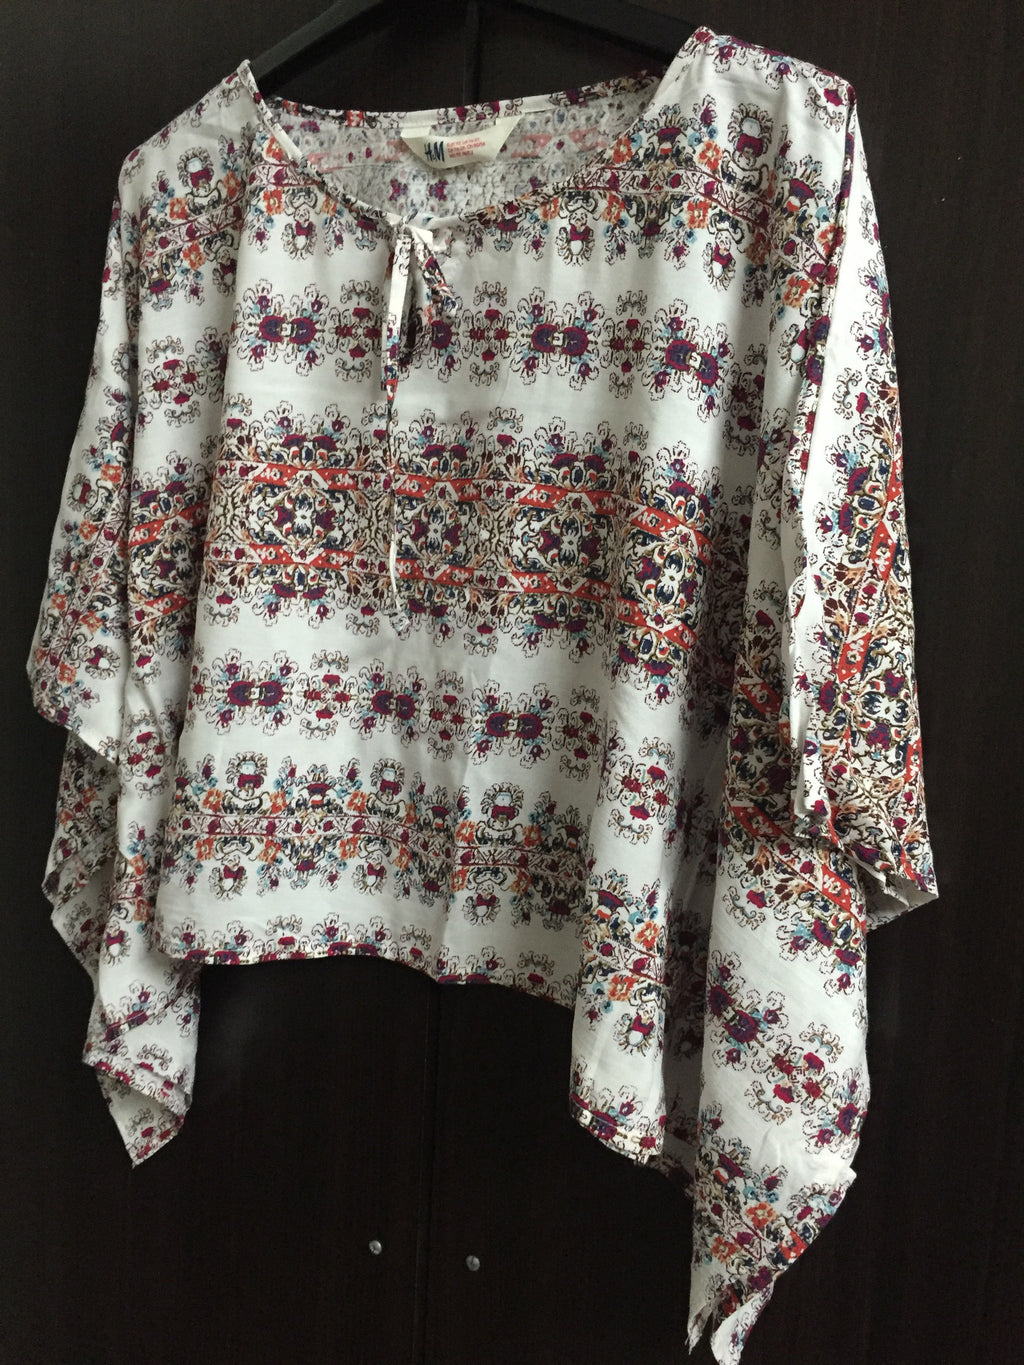 Poncho Style Horizontal Flowers Panel Top